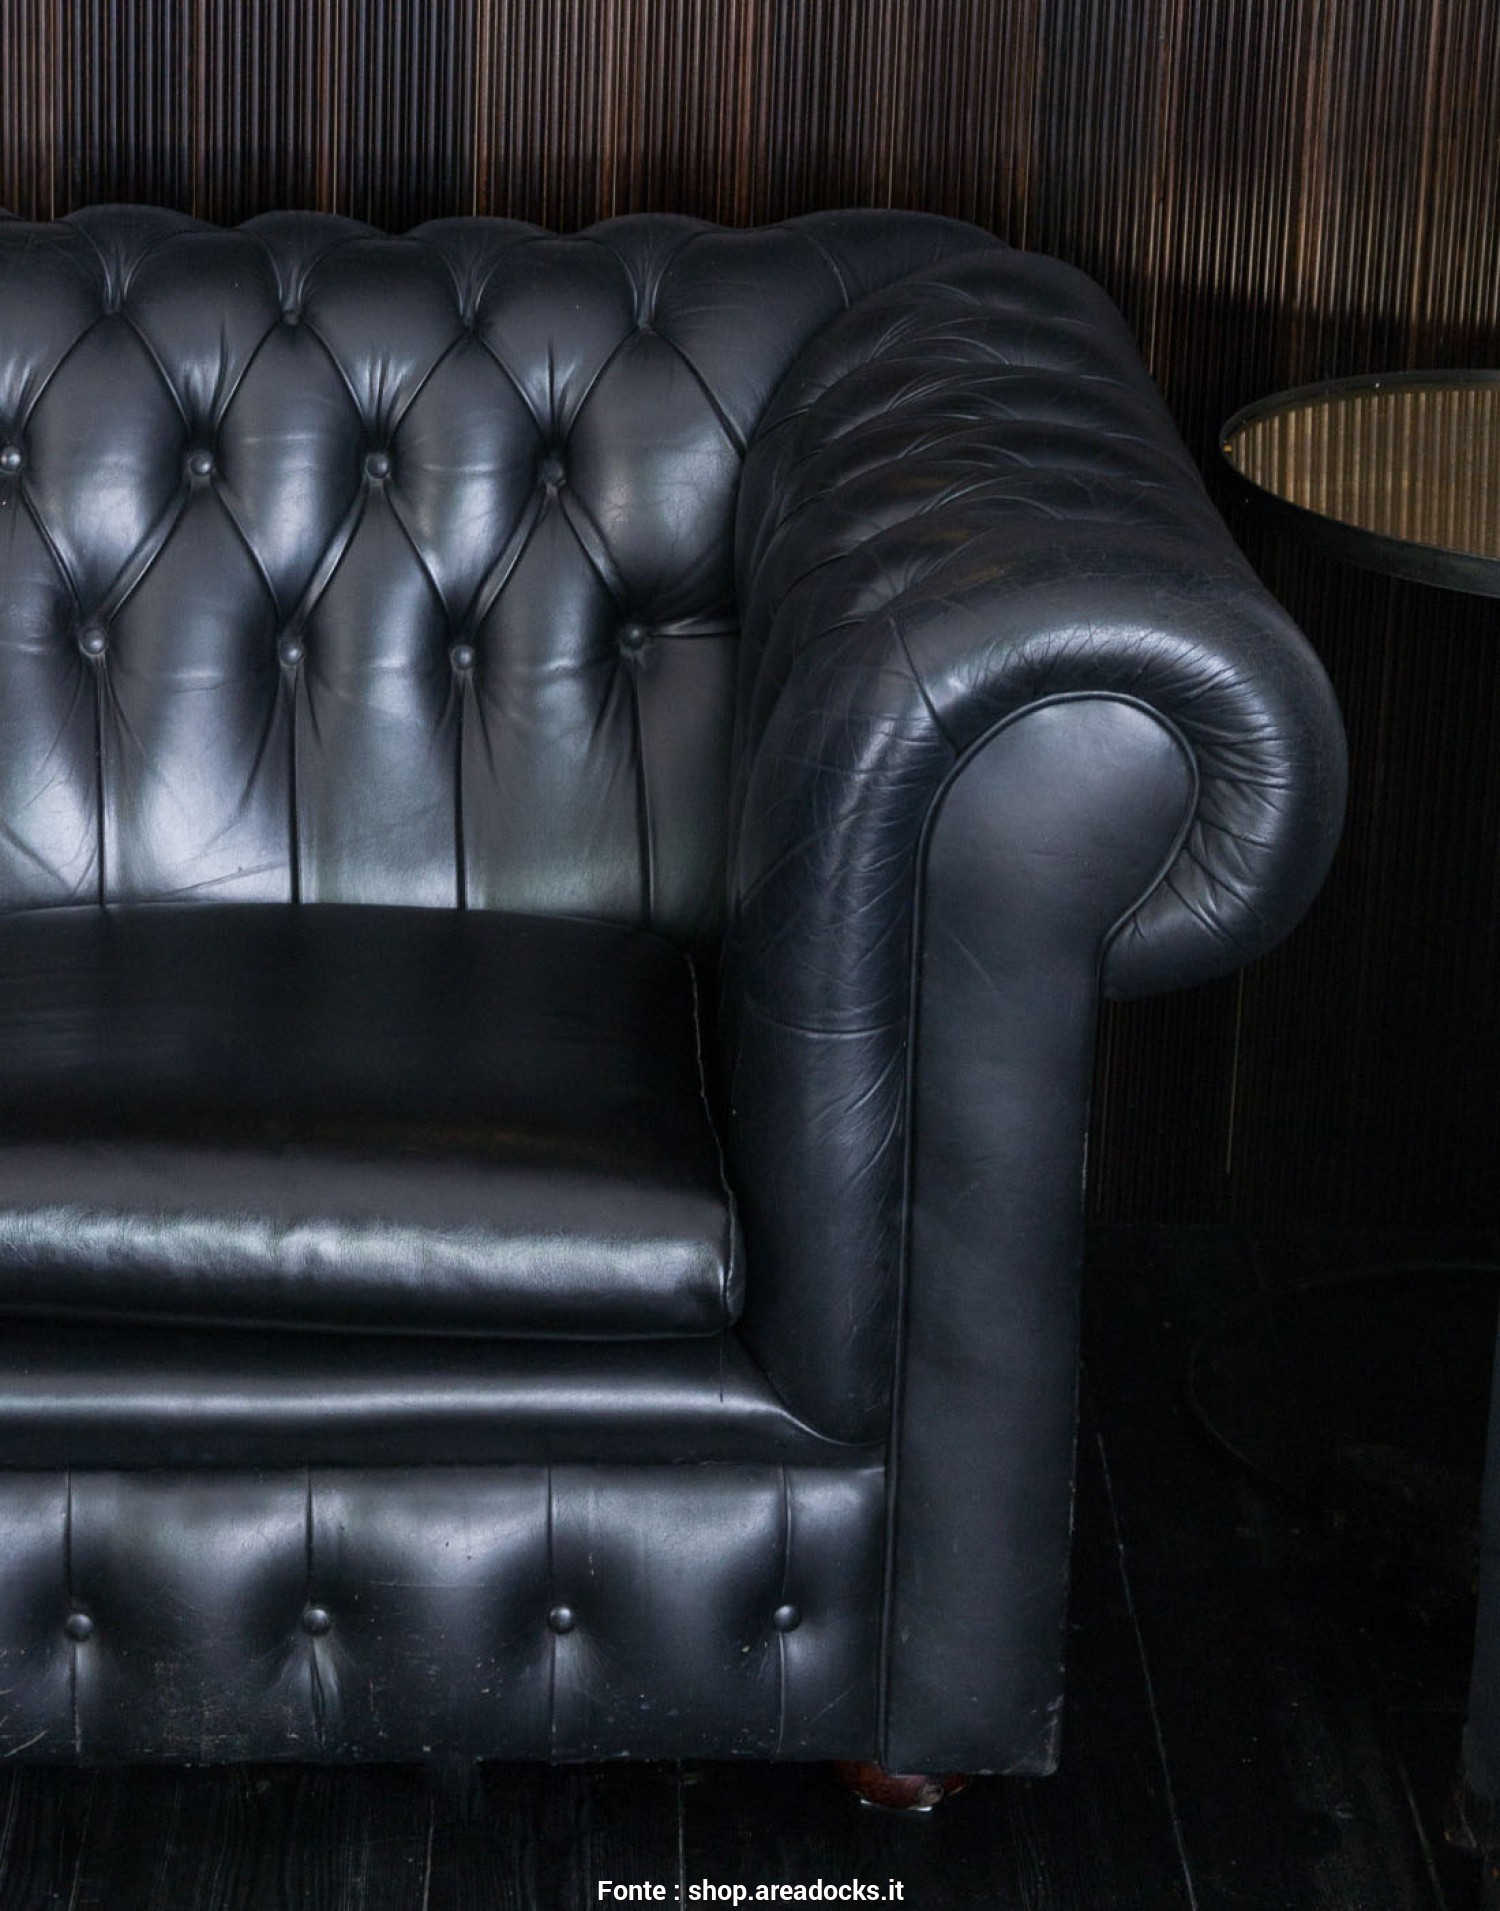 Chester Divano Vintage, Elegante AREADOCKS RESEARCH Leather Sofa Chester Chesterfield Black Three